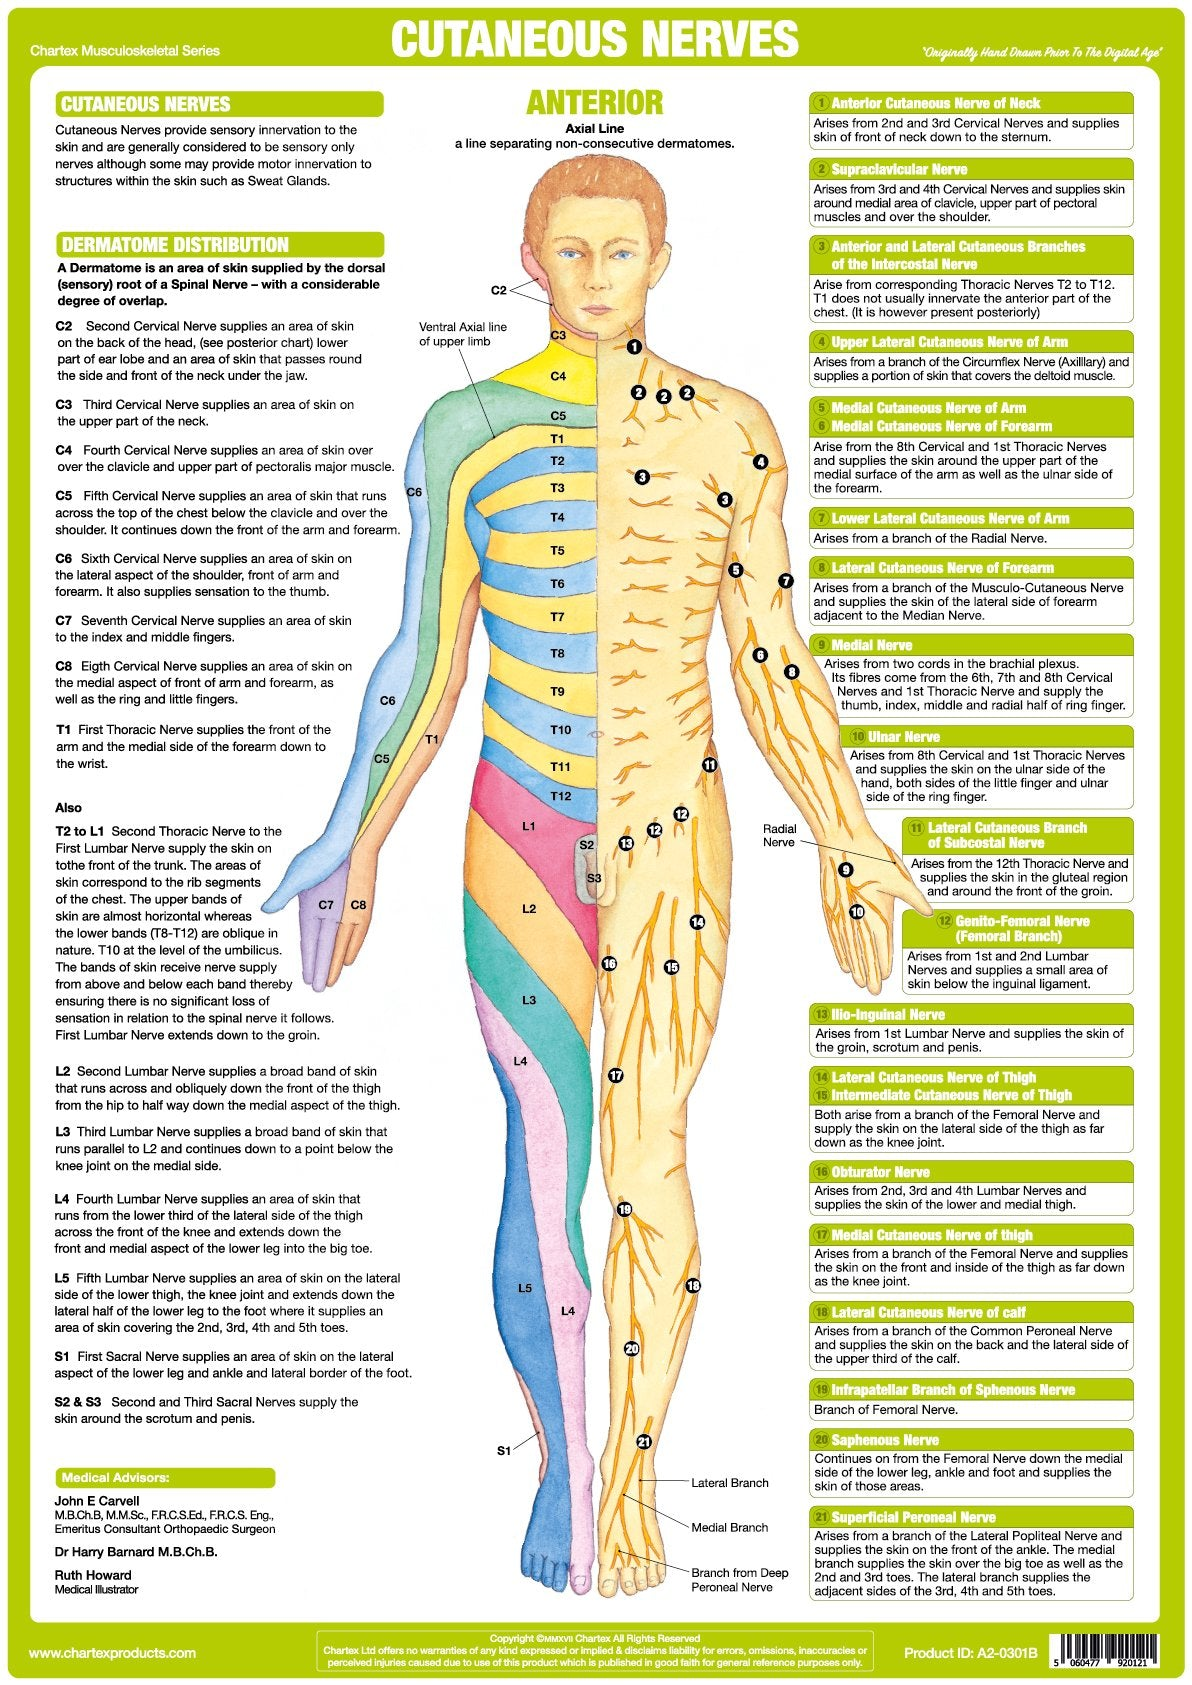 Cutaneous Nerves Anatomy Chart - Anterior - Chartex Ltd